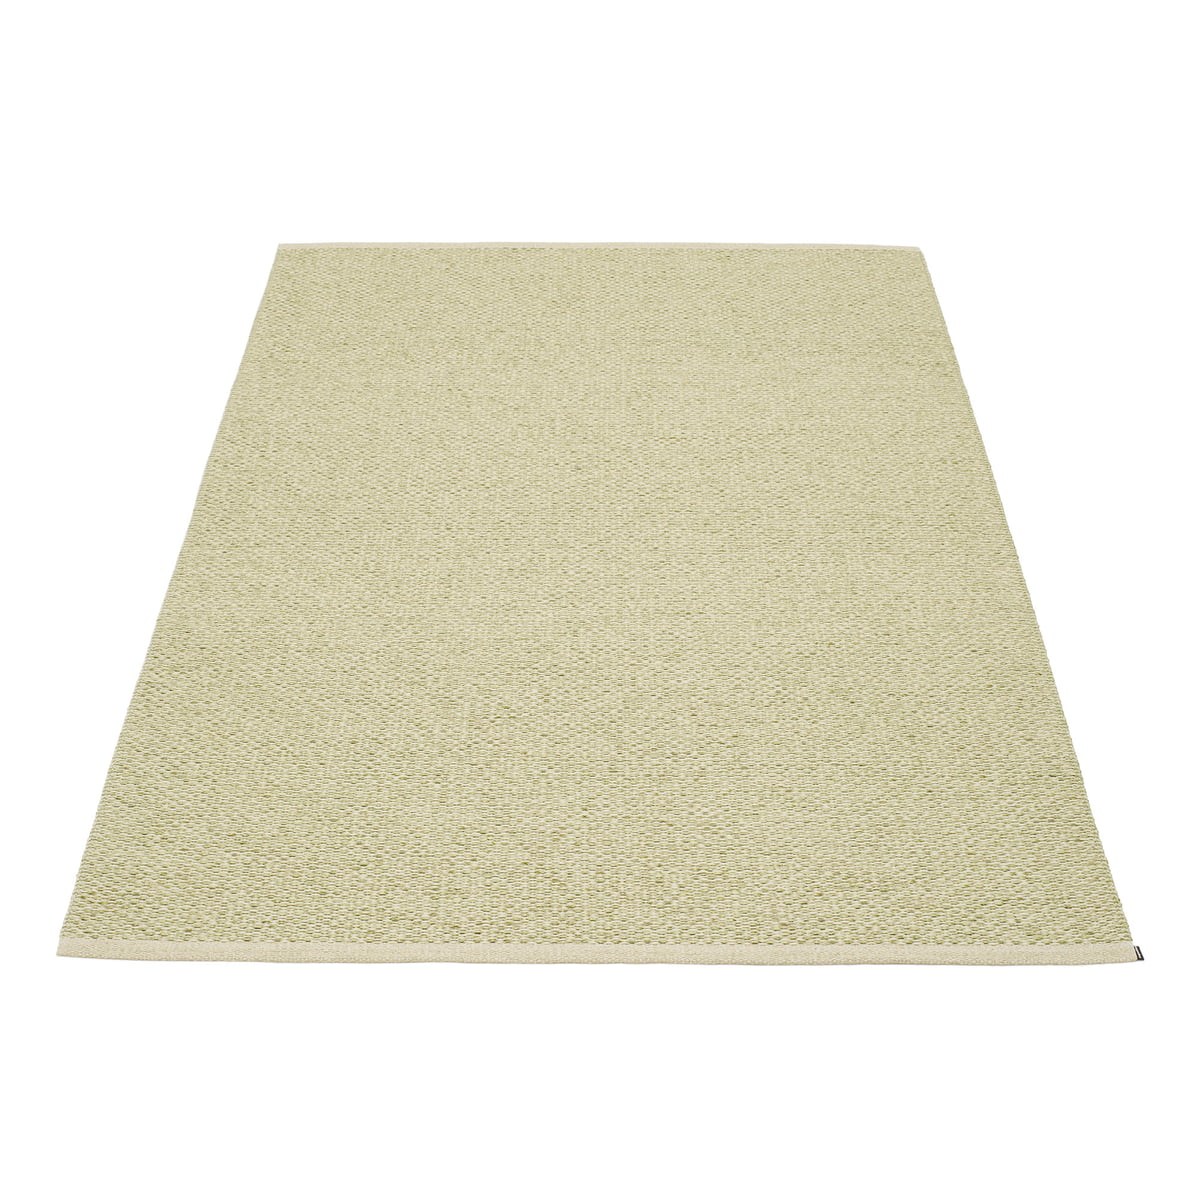 Teppich Pappelina Pappelina Svea Teppich 140 X 220 Cm Olive Metallic